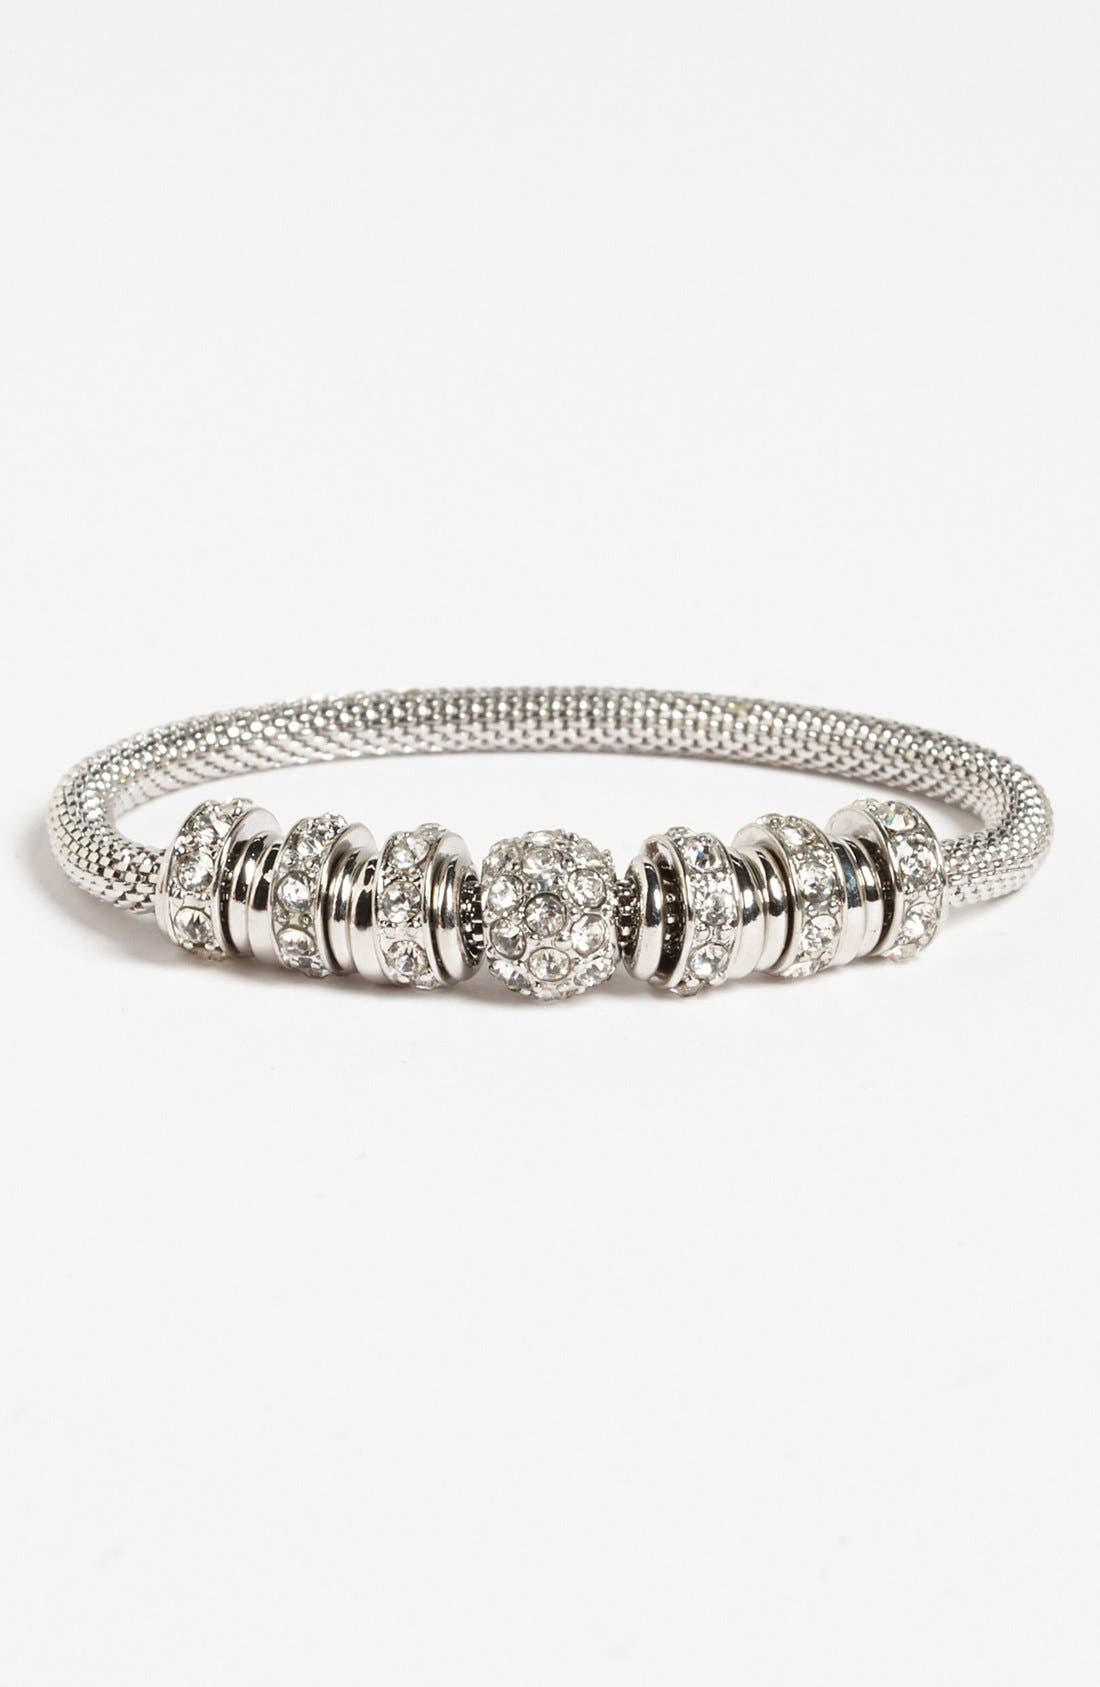 Main Image - Anne Klein Crystal Stretch Bracelet